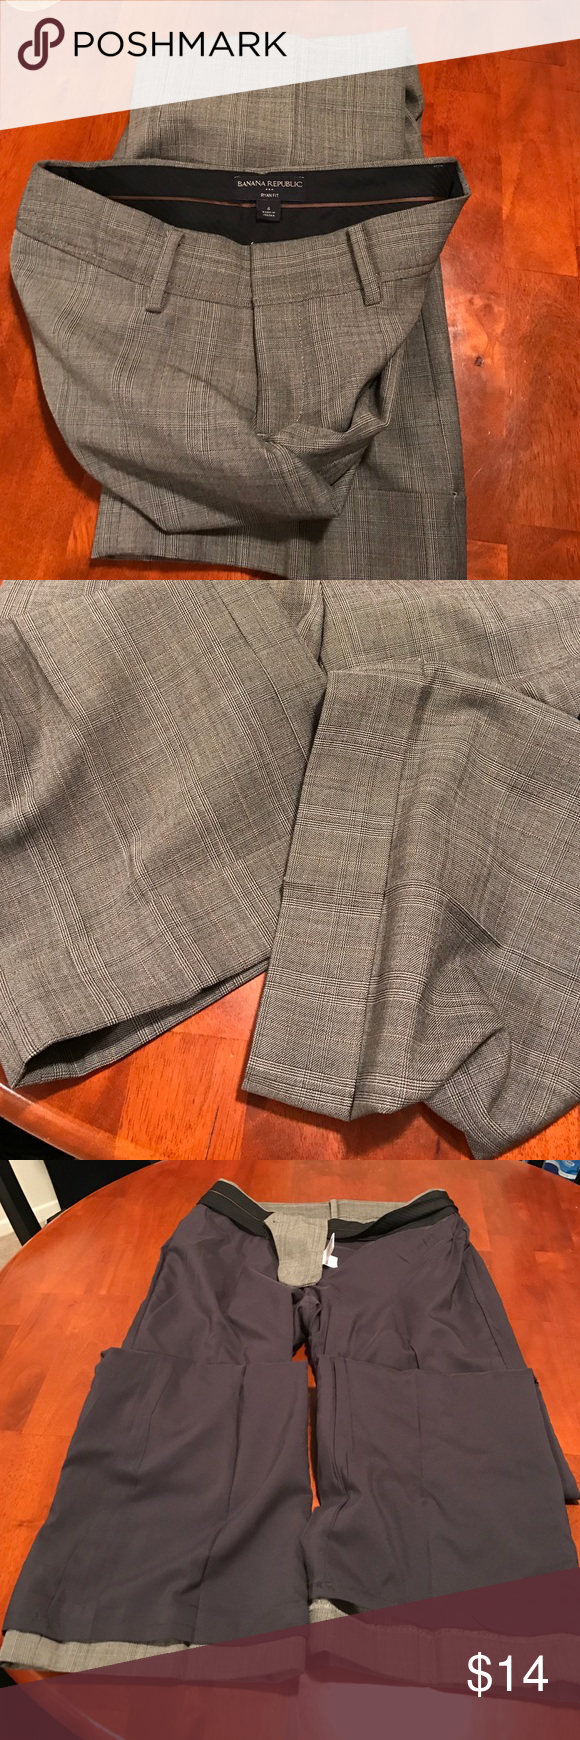 Never worn Bannana Republic Ryan Fit Perfect condition slacks pictured also inside out to show zero damage inside or outside of pants inseam is 32 1/2 inches. Size 4 Banana Republic Pants